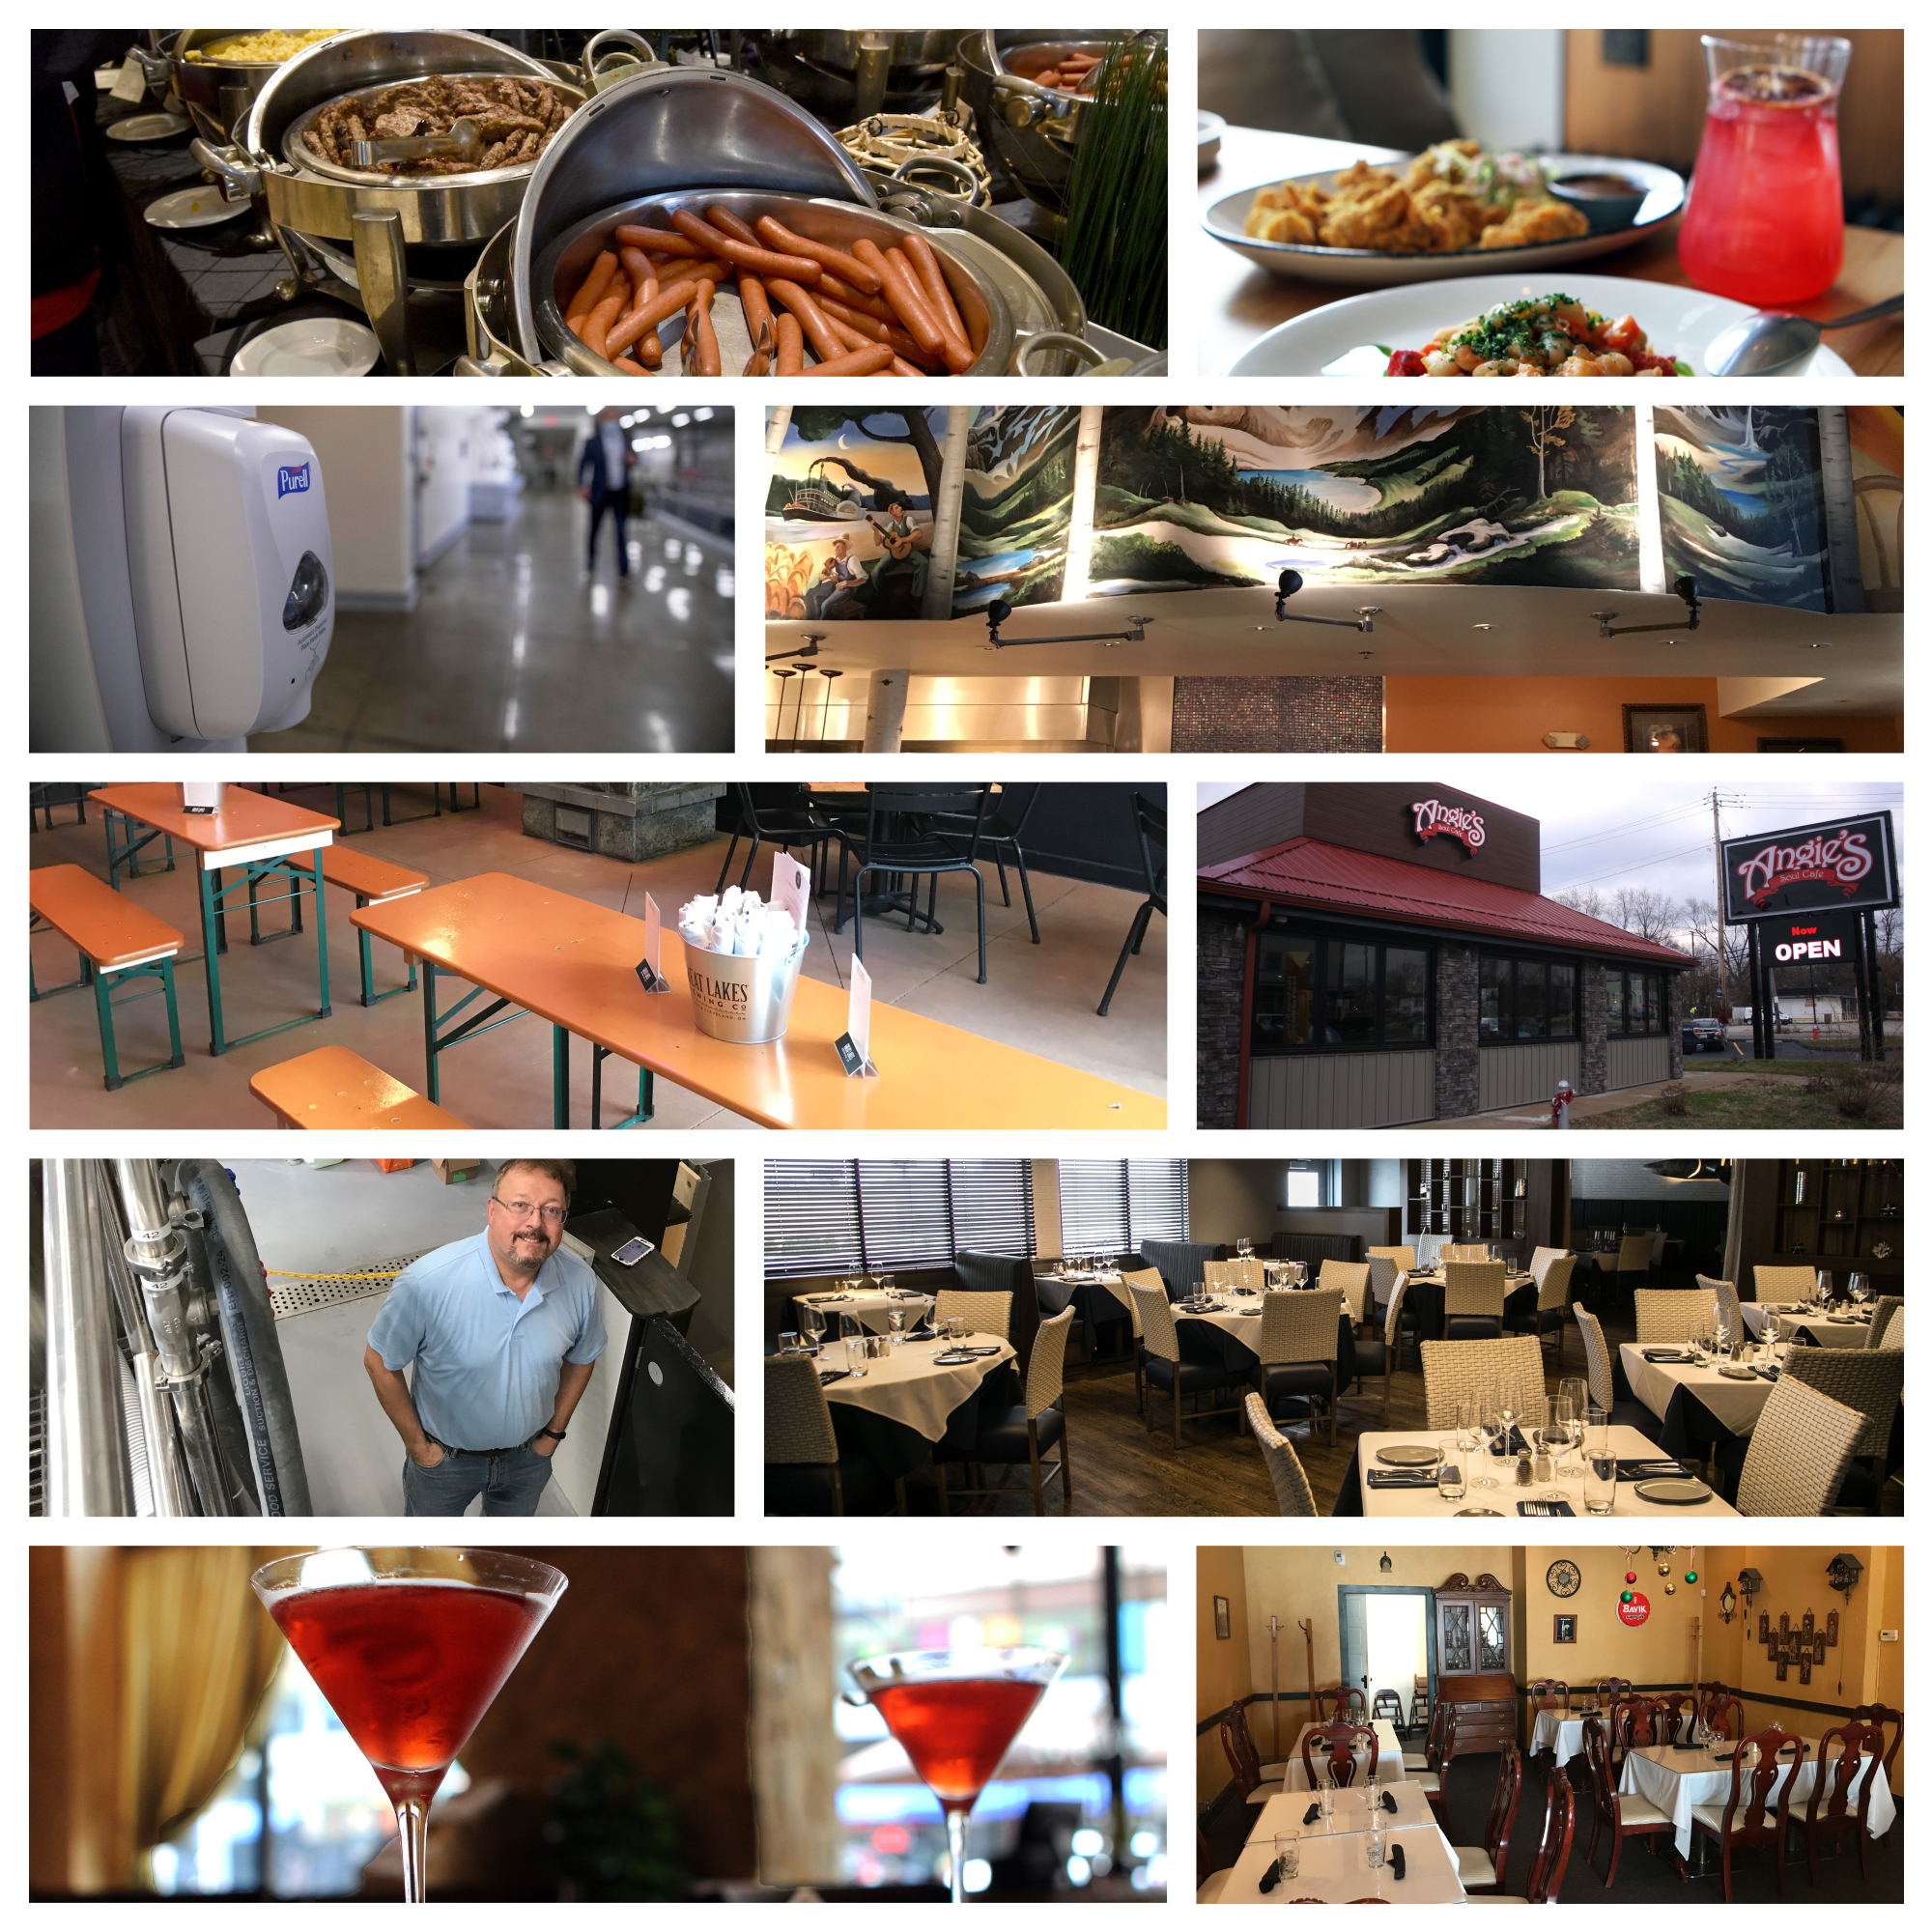 The Restaurant Of The Future The Coronavirus Means We Ll Be Dining Out In A Whole New Way Cleveland Com